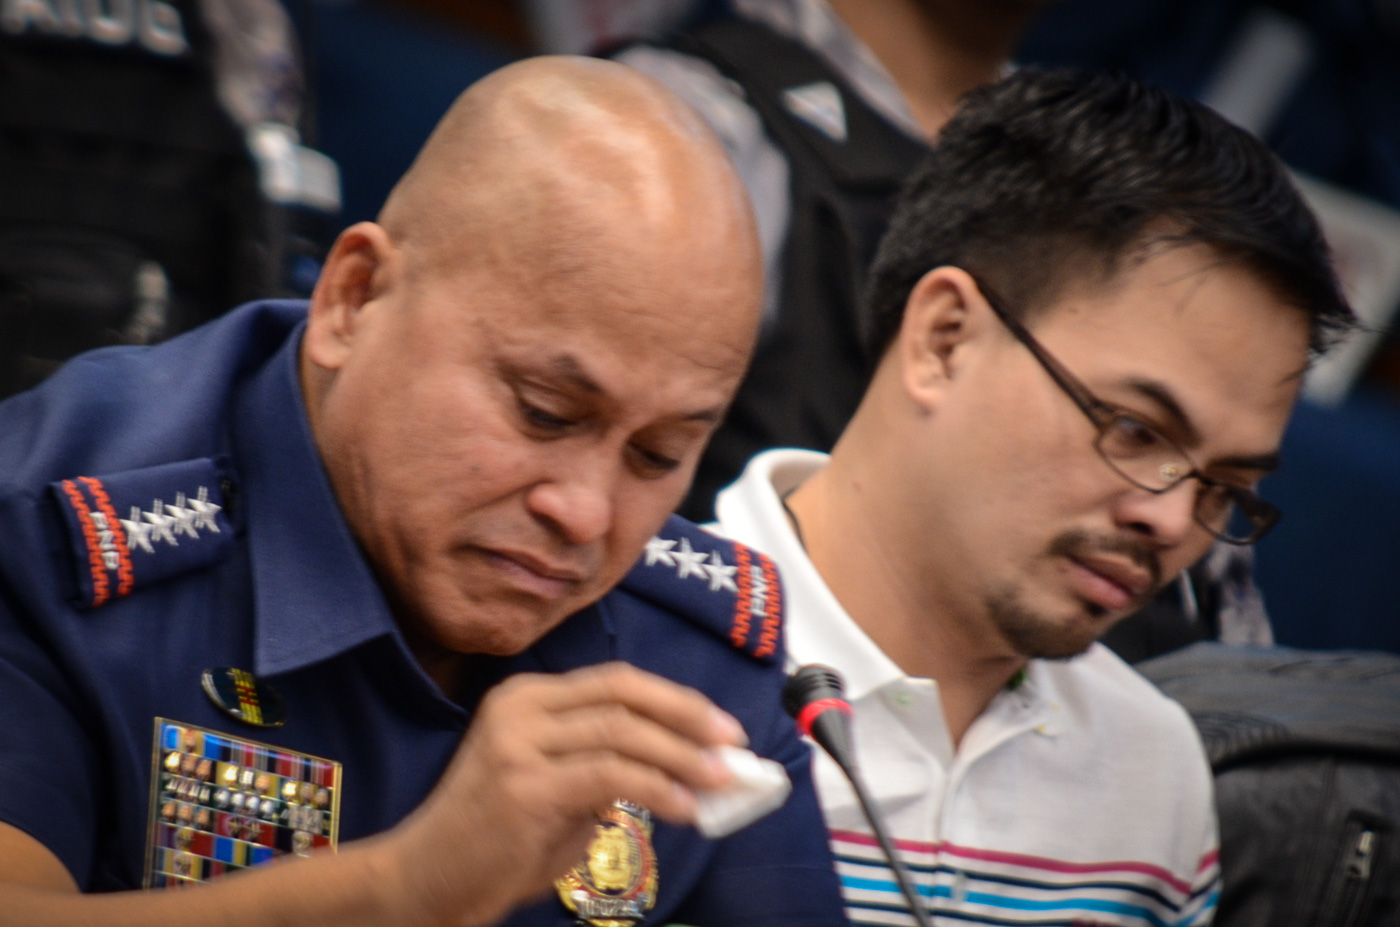 EMOTIONAL. PNP chief Director General Ronald dela Rosa turns emotional at the Senate inquiry into the death of Albuera Mayor Rolando Espinosa Sr, November 23, 2016. Photo by LeAnne Jazul/Rappler